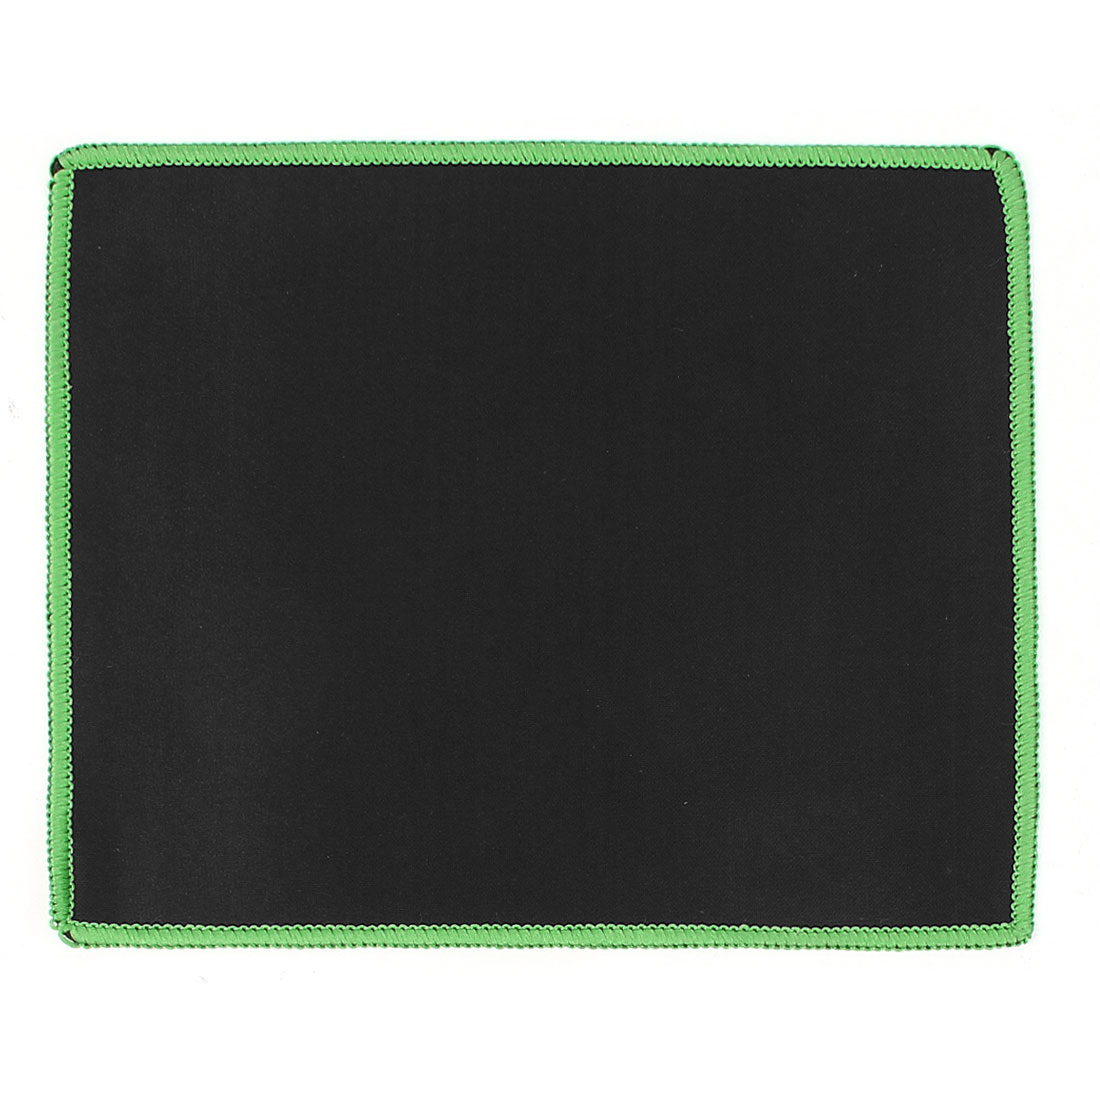 Black Green 29cmx25cm Rectangle Nonslip Neoprene PC Desktop Gaming Mouse Pad Mat